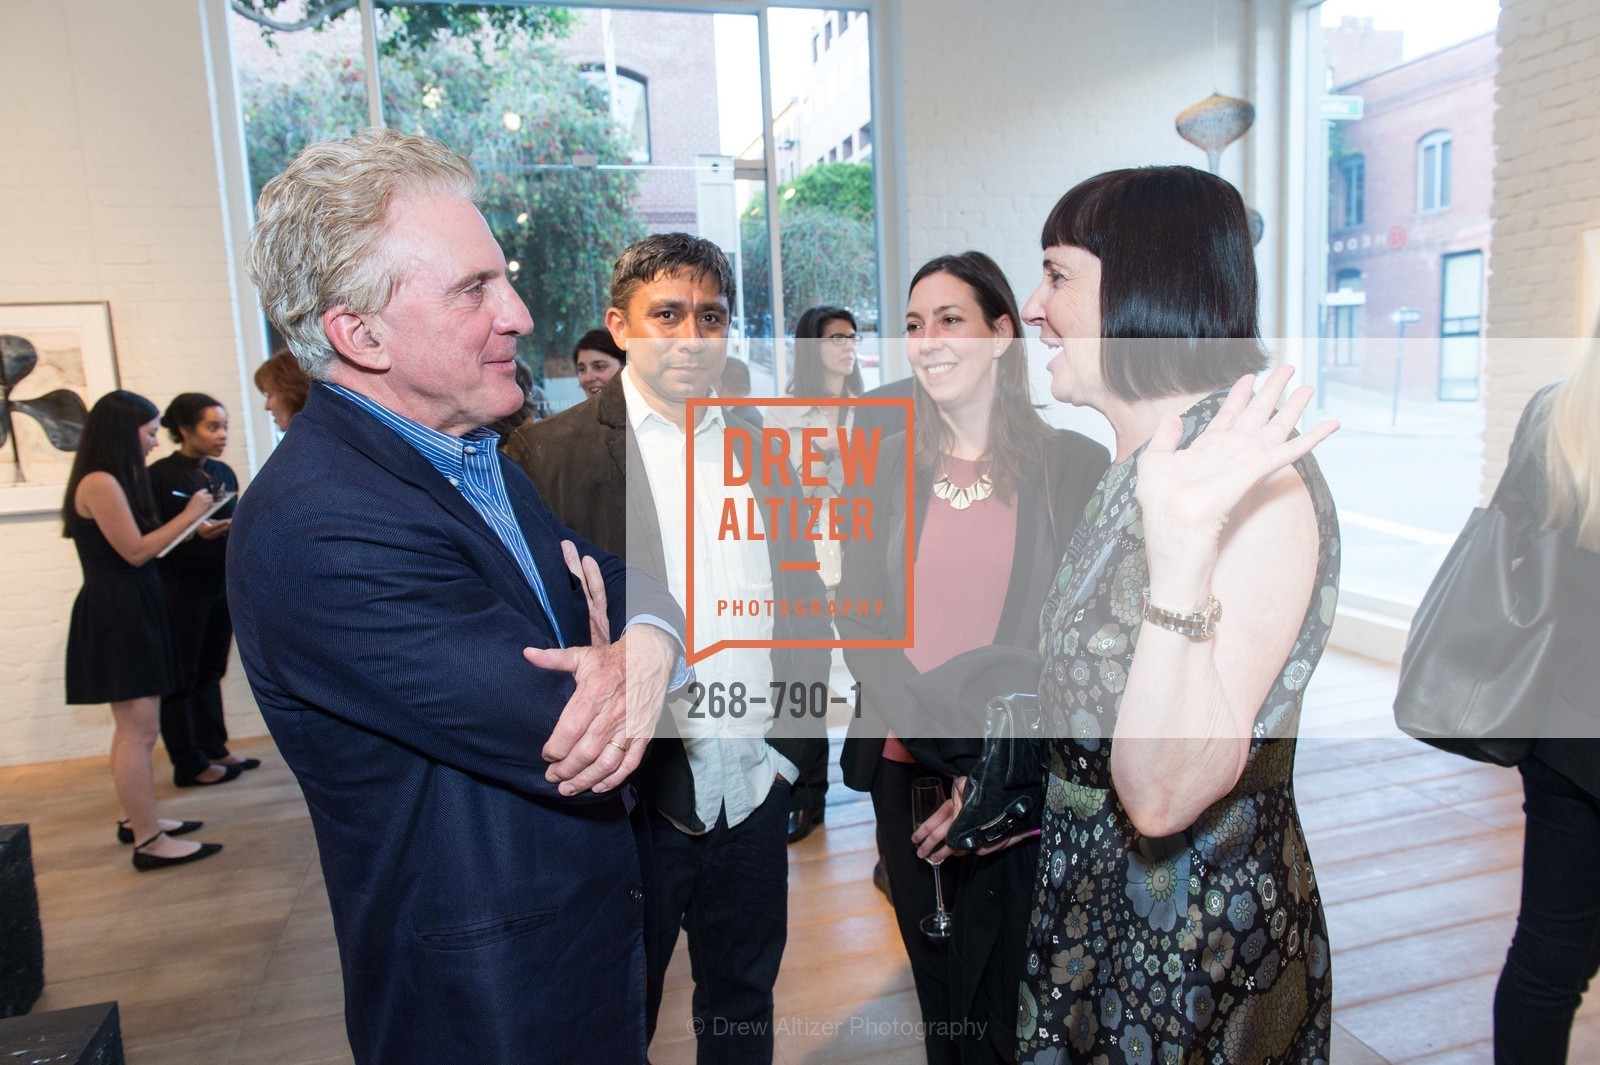 Chris Perez, Claudia Altman-siegel, Carla Emil, Post War and Contemporary Preview at HEDGE GALLERY, US, April 15th, 2015,Drew Altizer, Drew Altizer Photography, full-service agency, private events, San Francisco photographer, photographer california